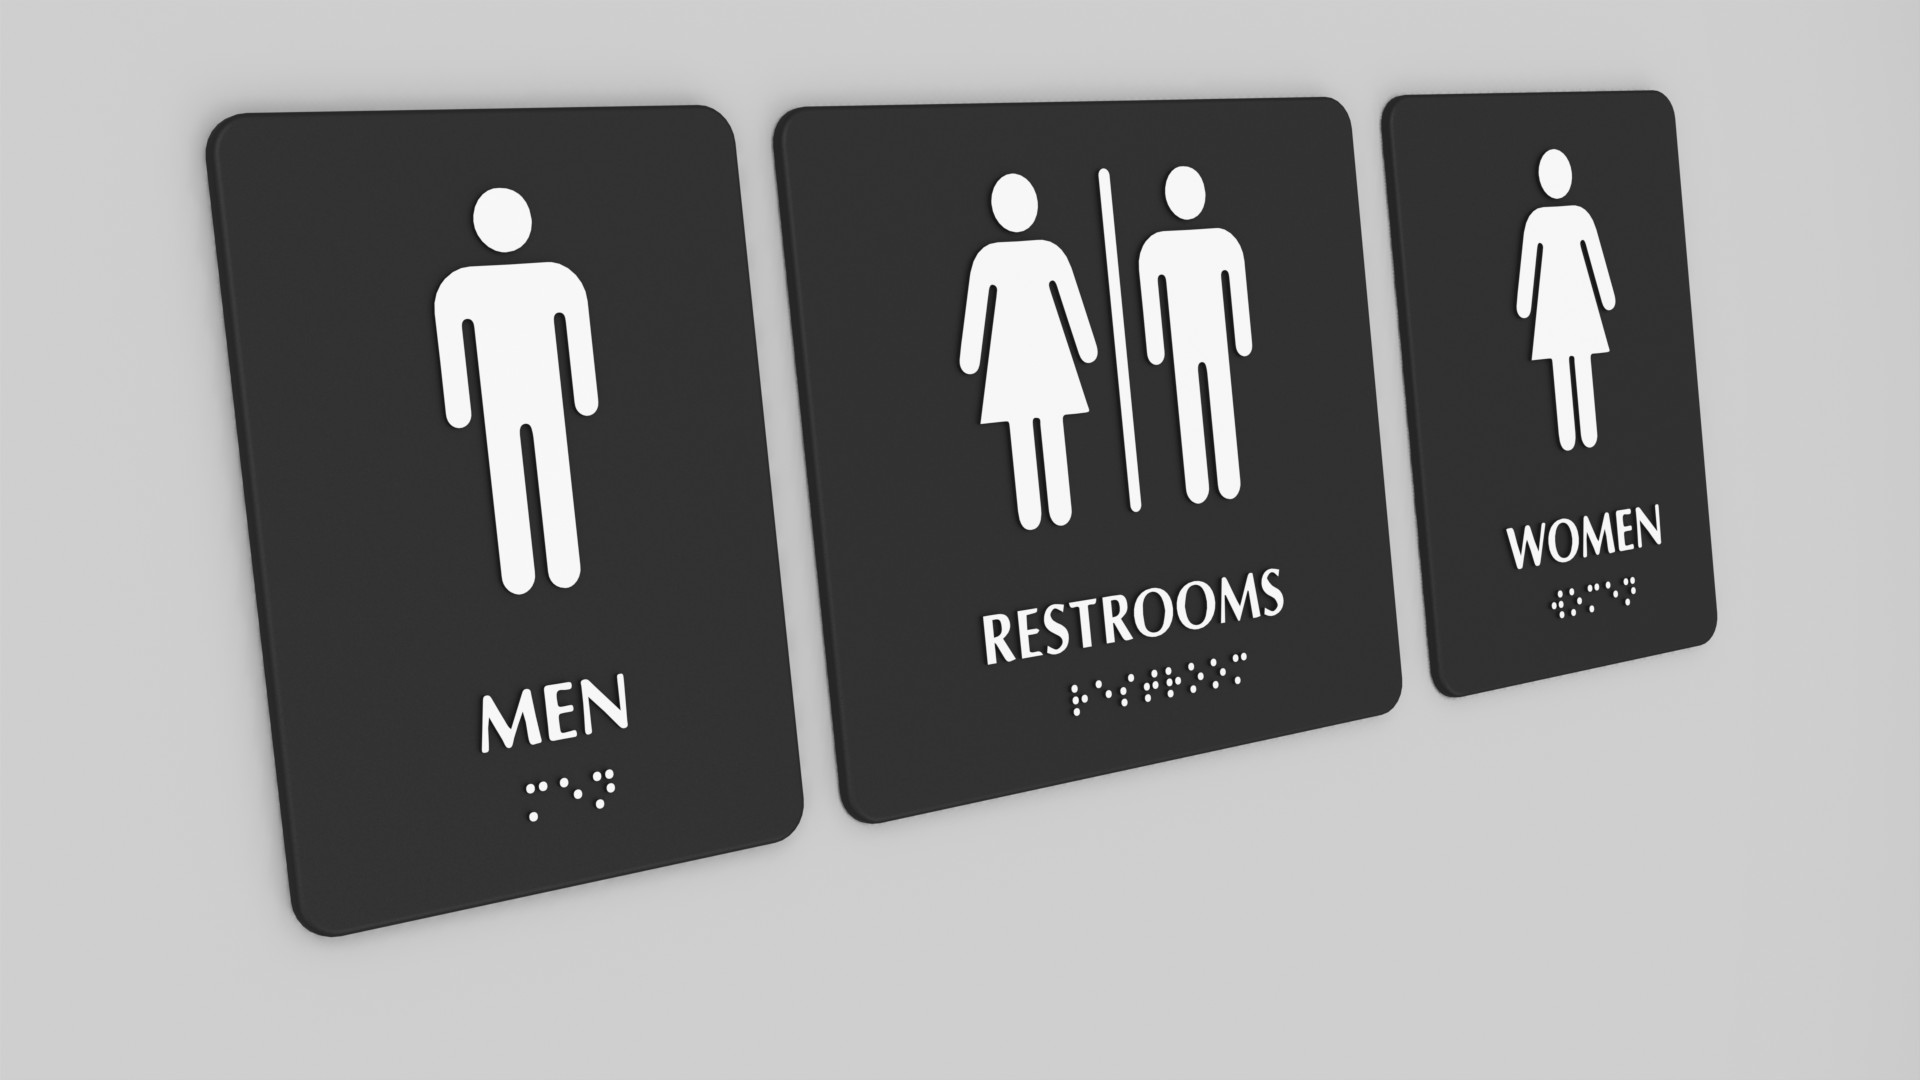 braille-toilet-restroom-signs-3d-model-low-poly-stl